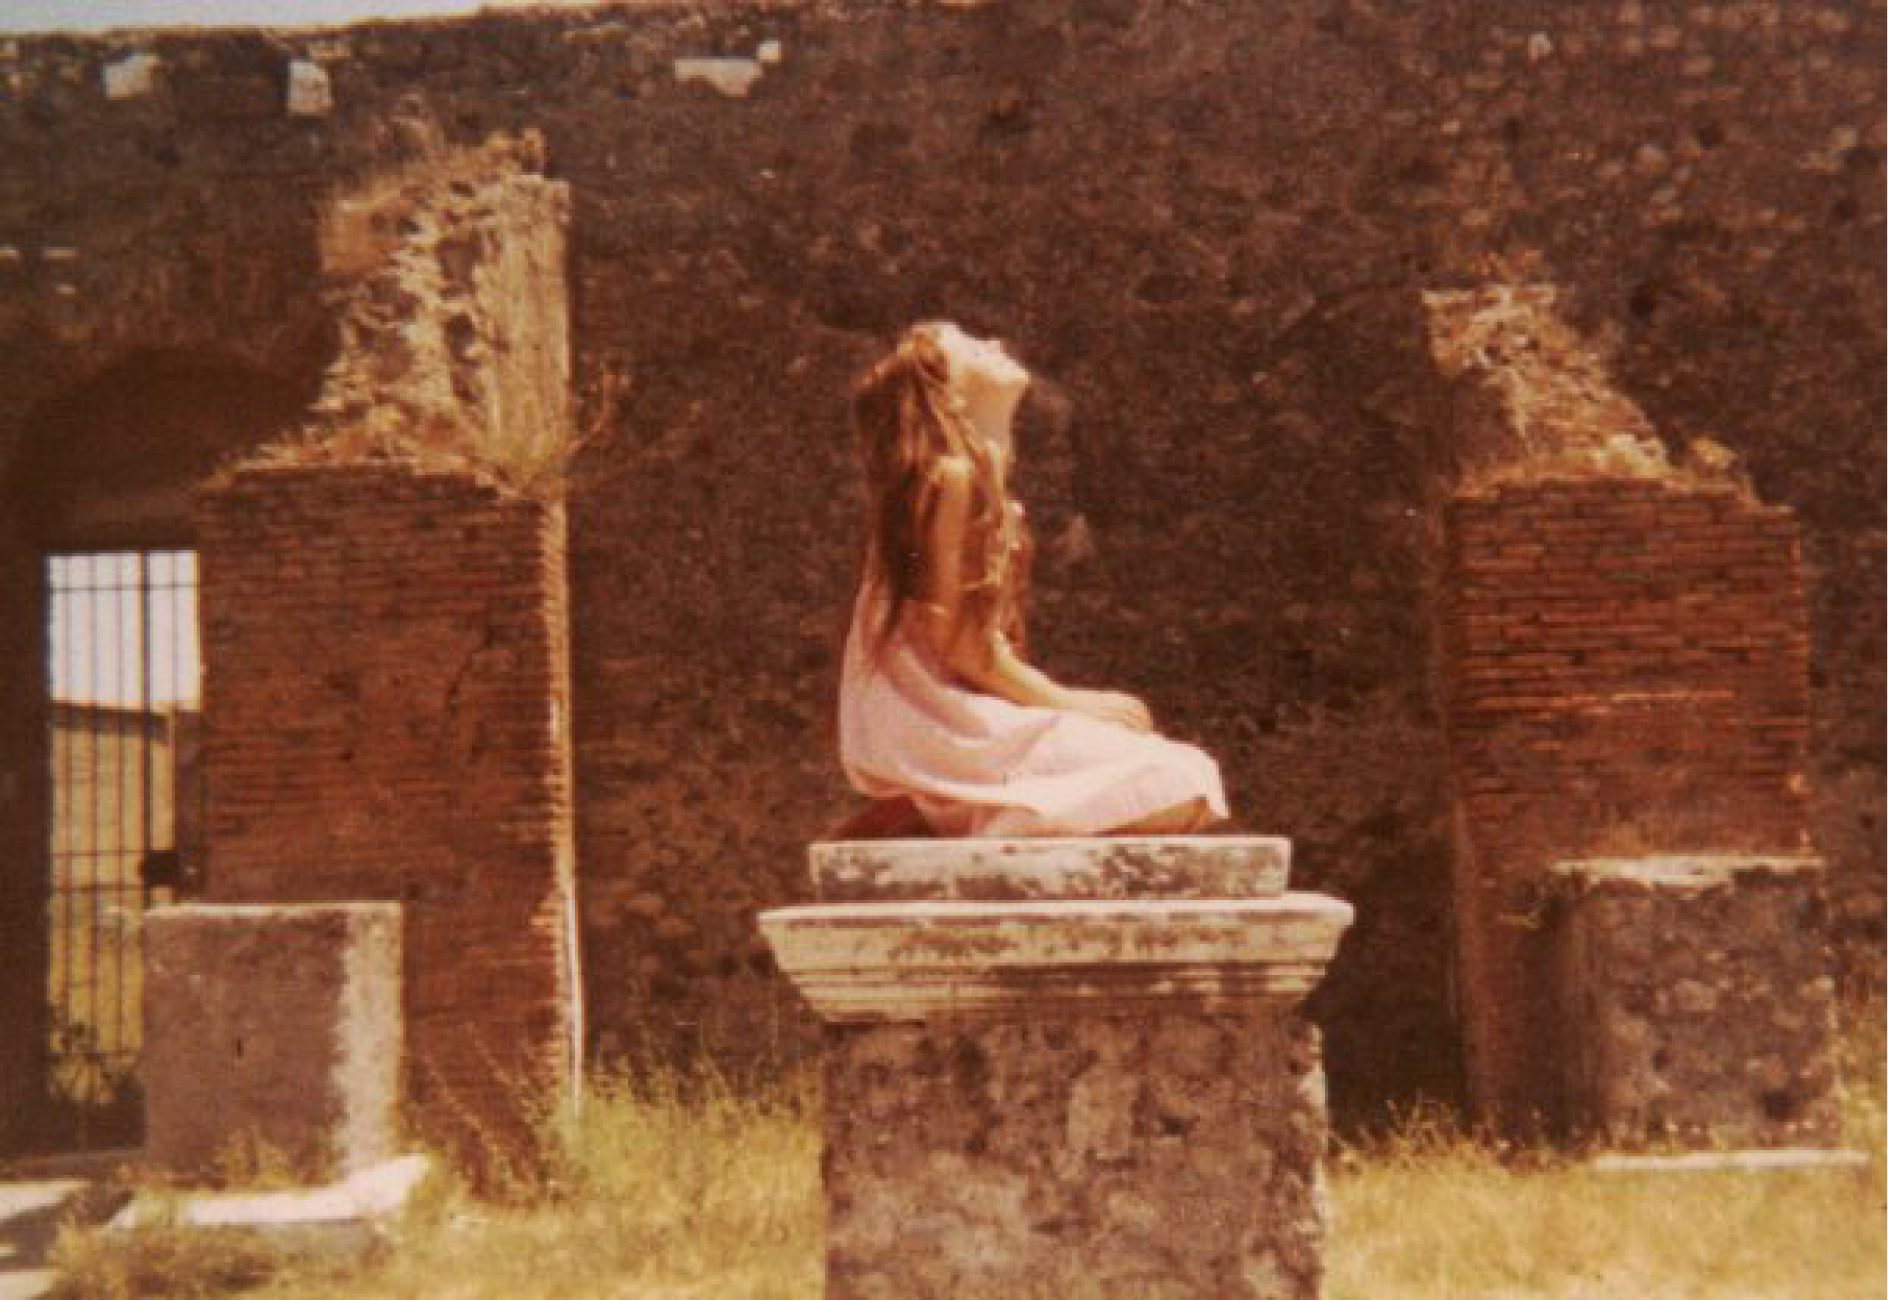 My mother Shelley asked me to strike this pose in Pompeii. I had to pretend to be a nymph,  praying to Venus.